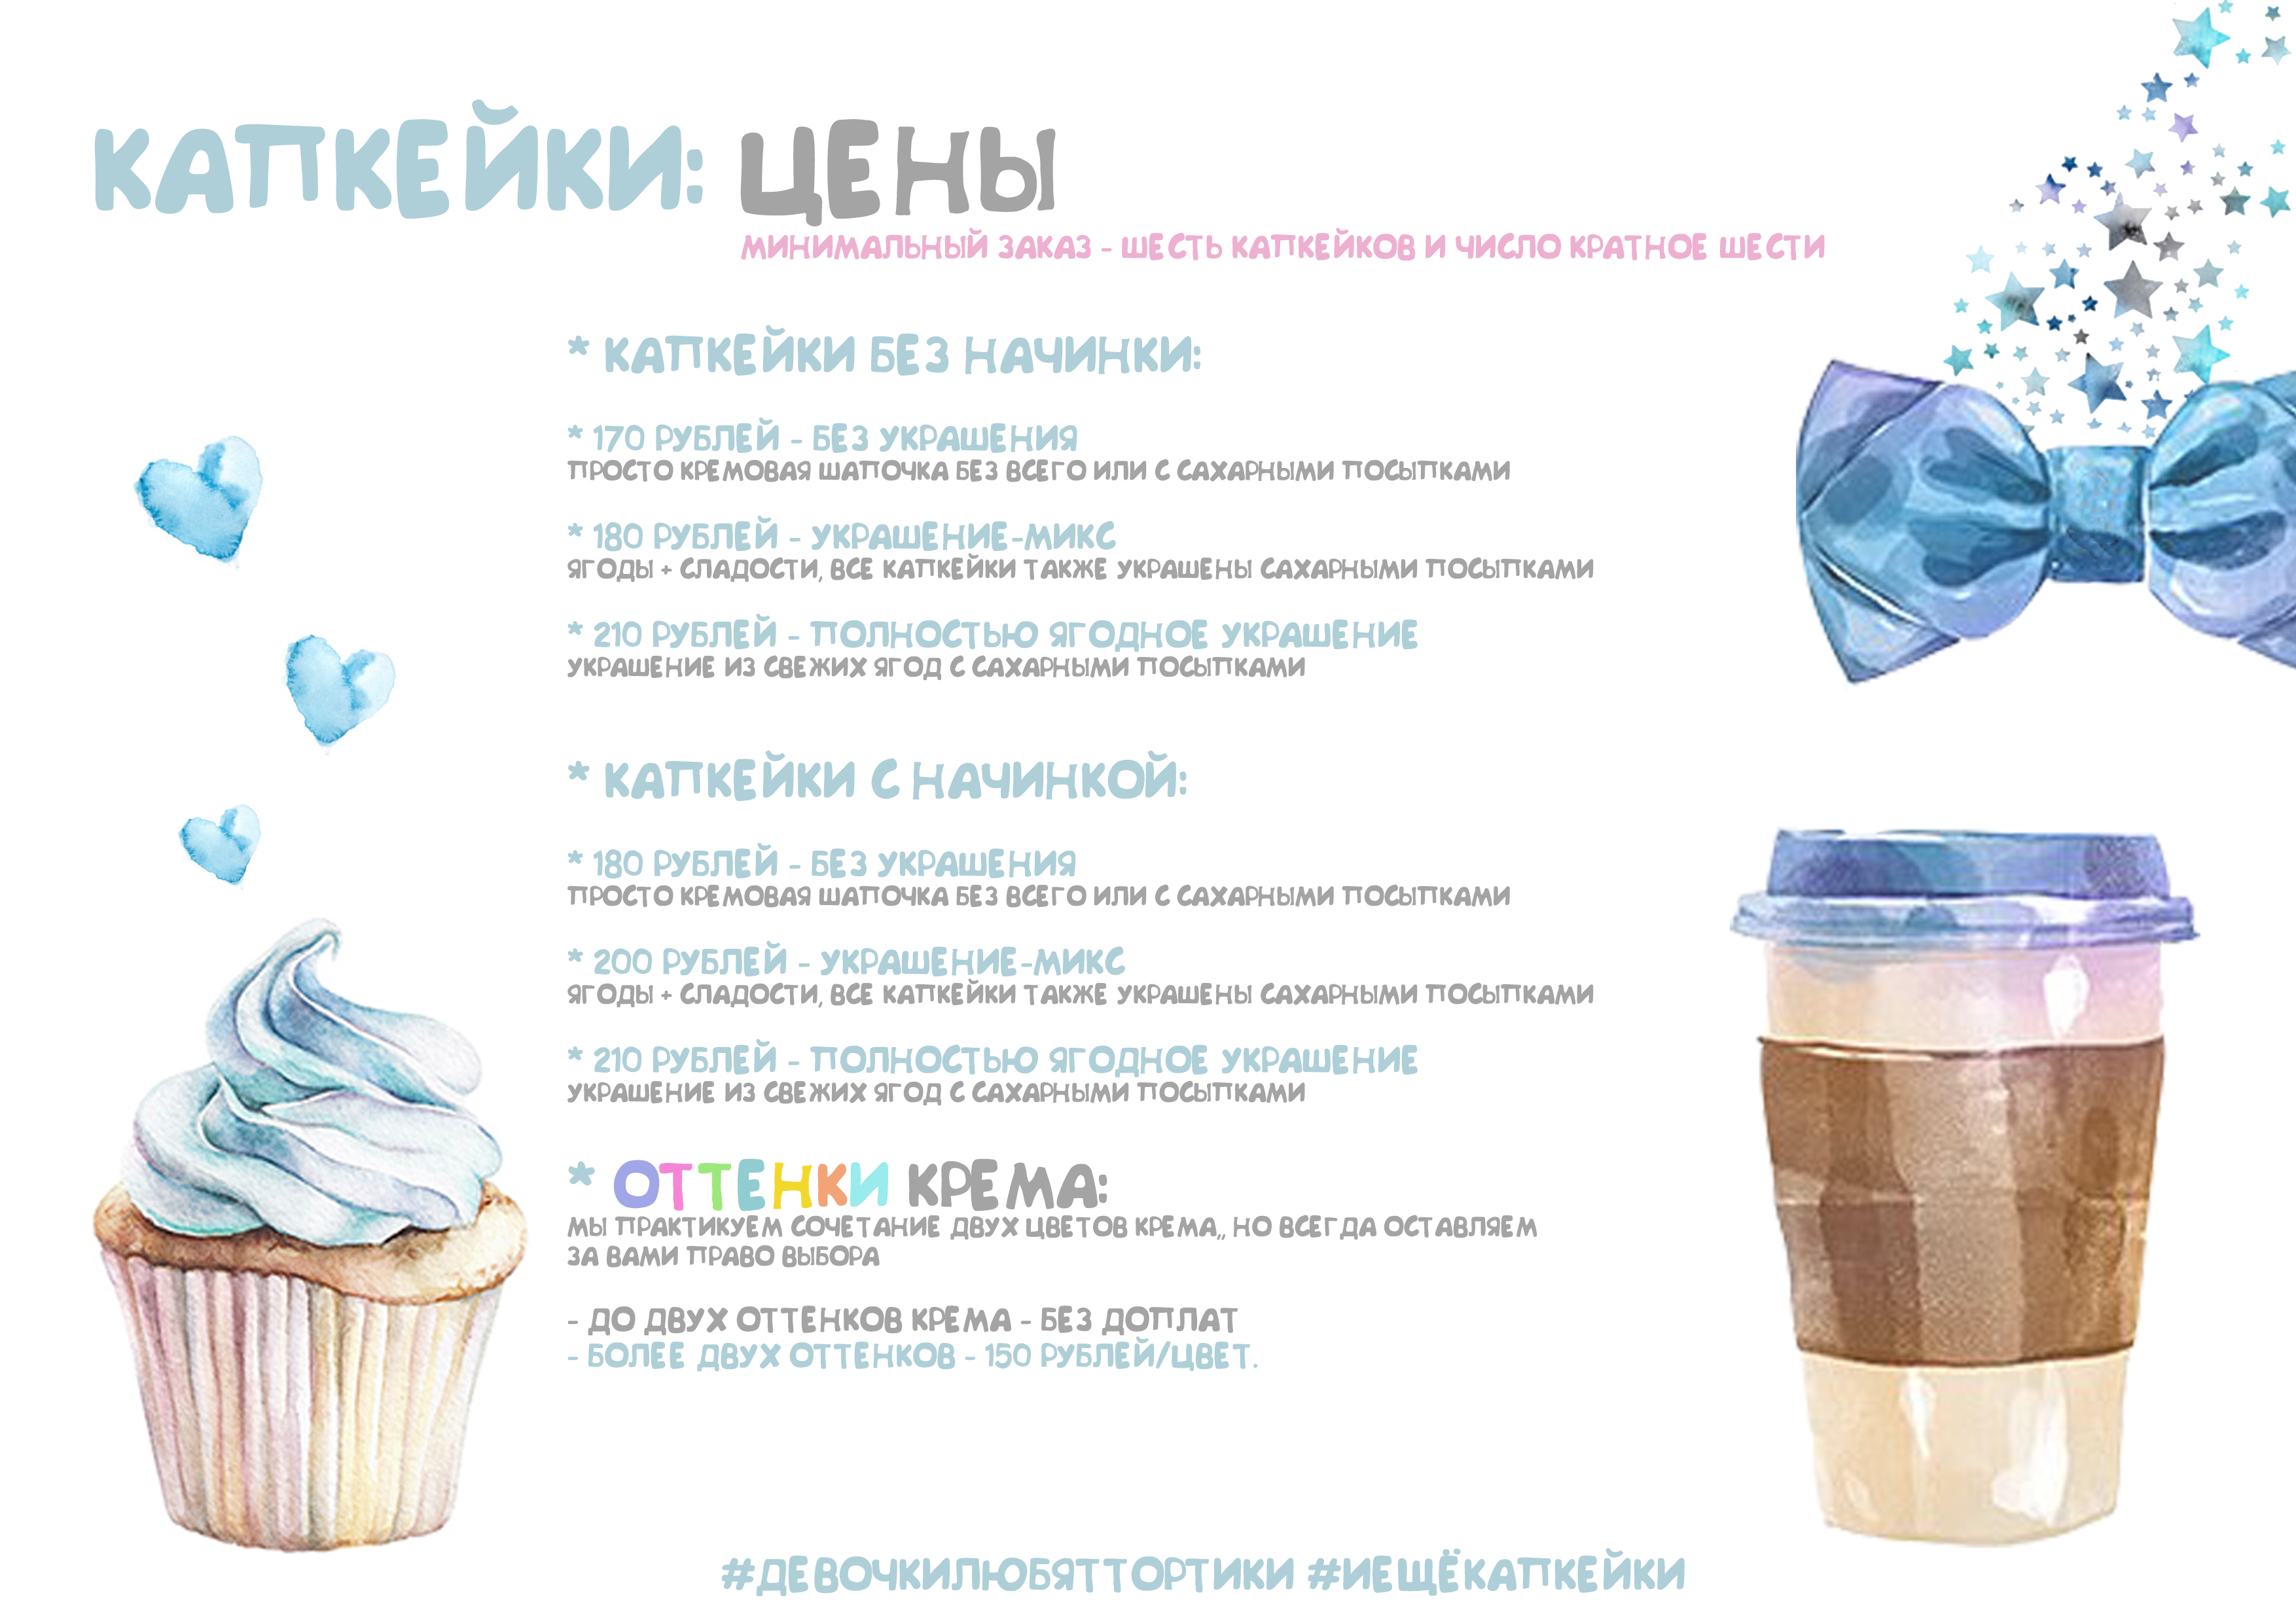 4.2 - cupcakes, prices